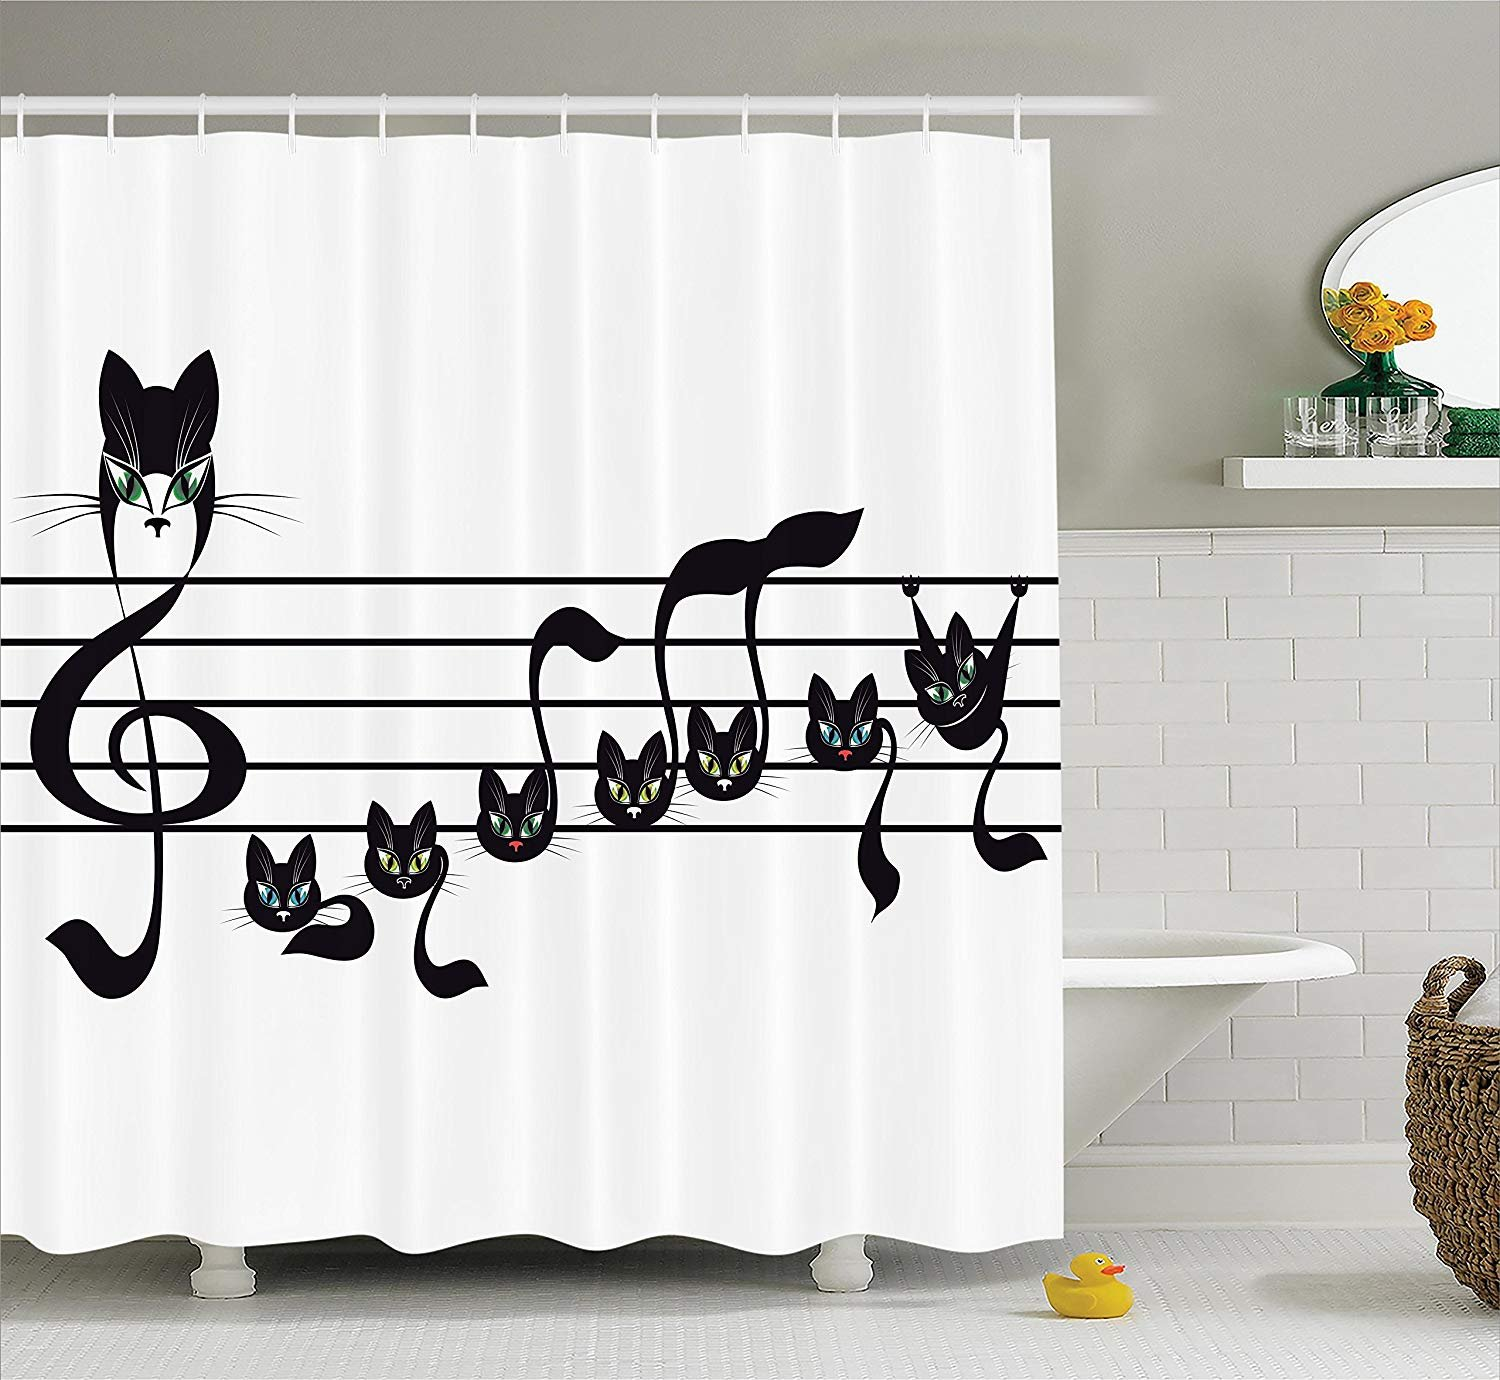 """Ambesonne Music Shower Curtain, Notes Kittens Kitty Cat Artwork Notation Tune Children Halloween Monochrome, Cloth Fabric Bathroom Decor Set with Hooks, 70"""" Long, White and Black"""